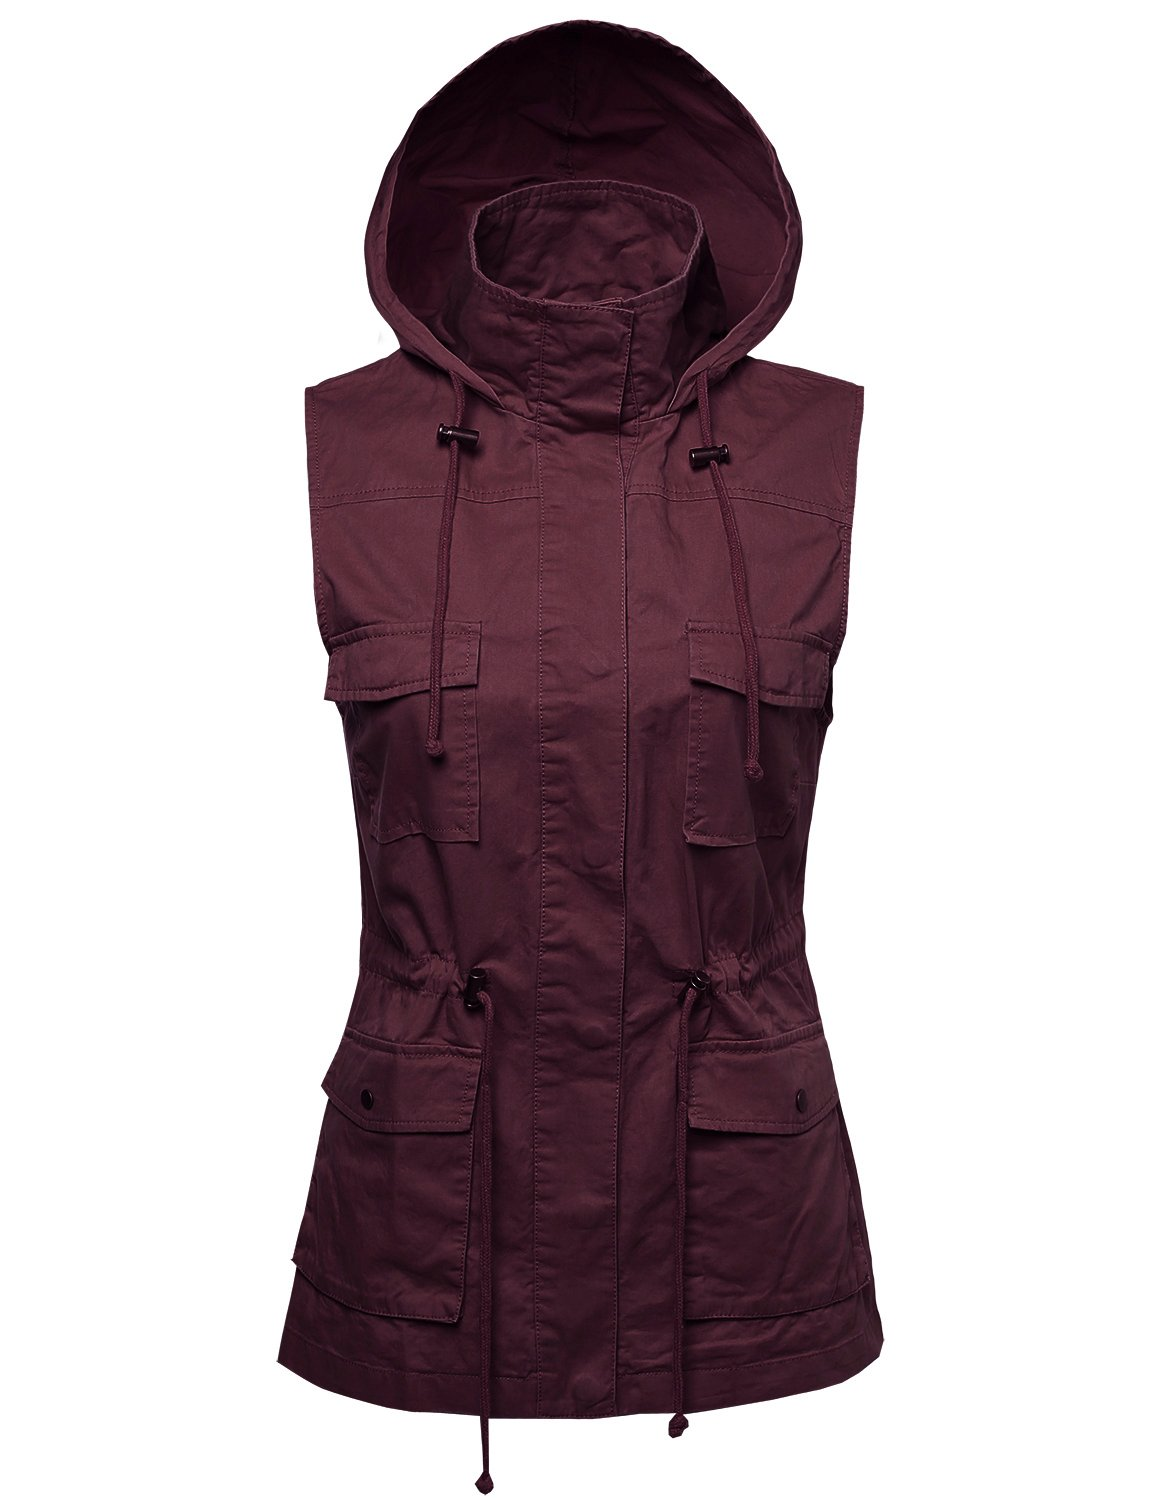 Made by Emma Sleeveless Safari Military Hooded Vest Jacket Wine L